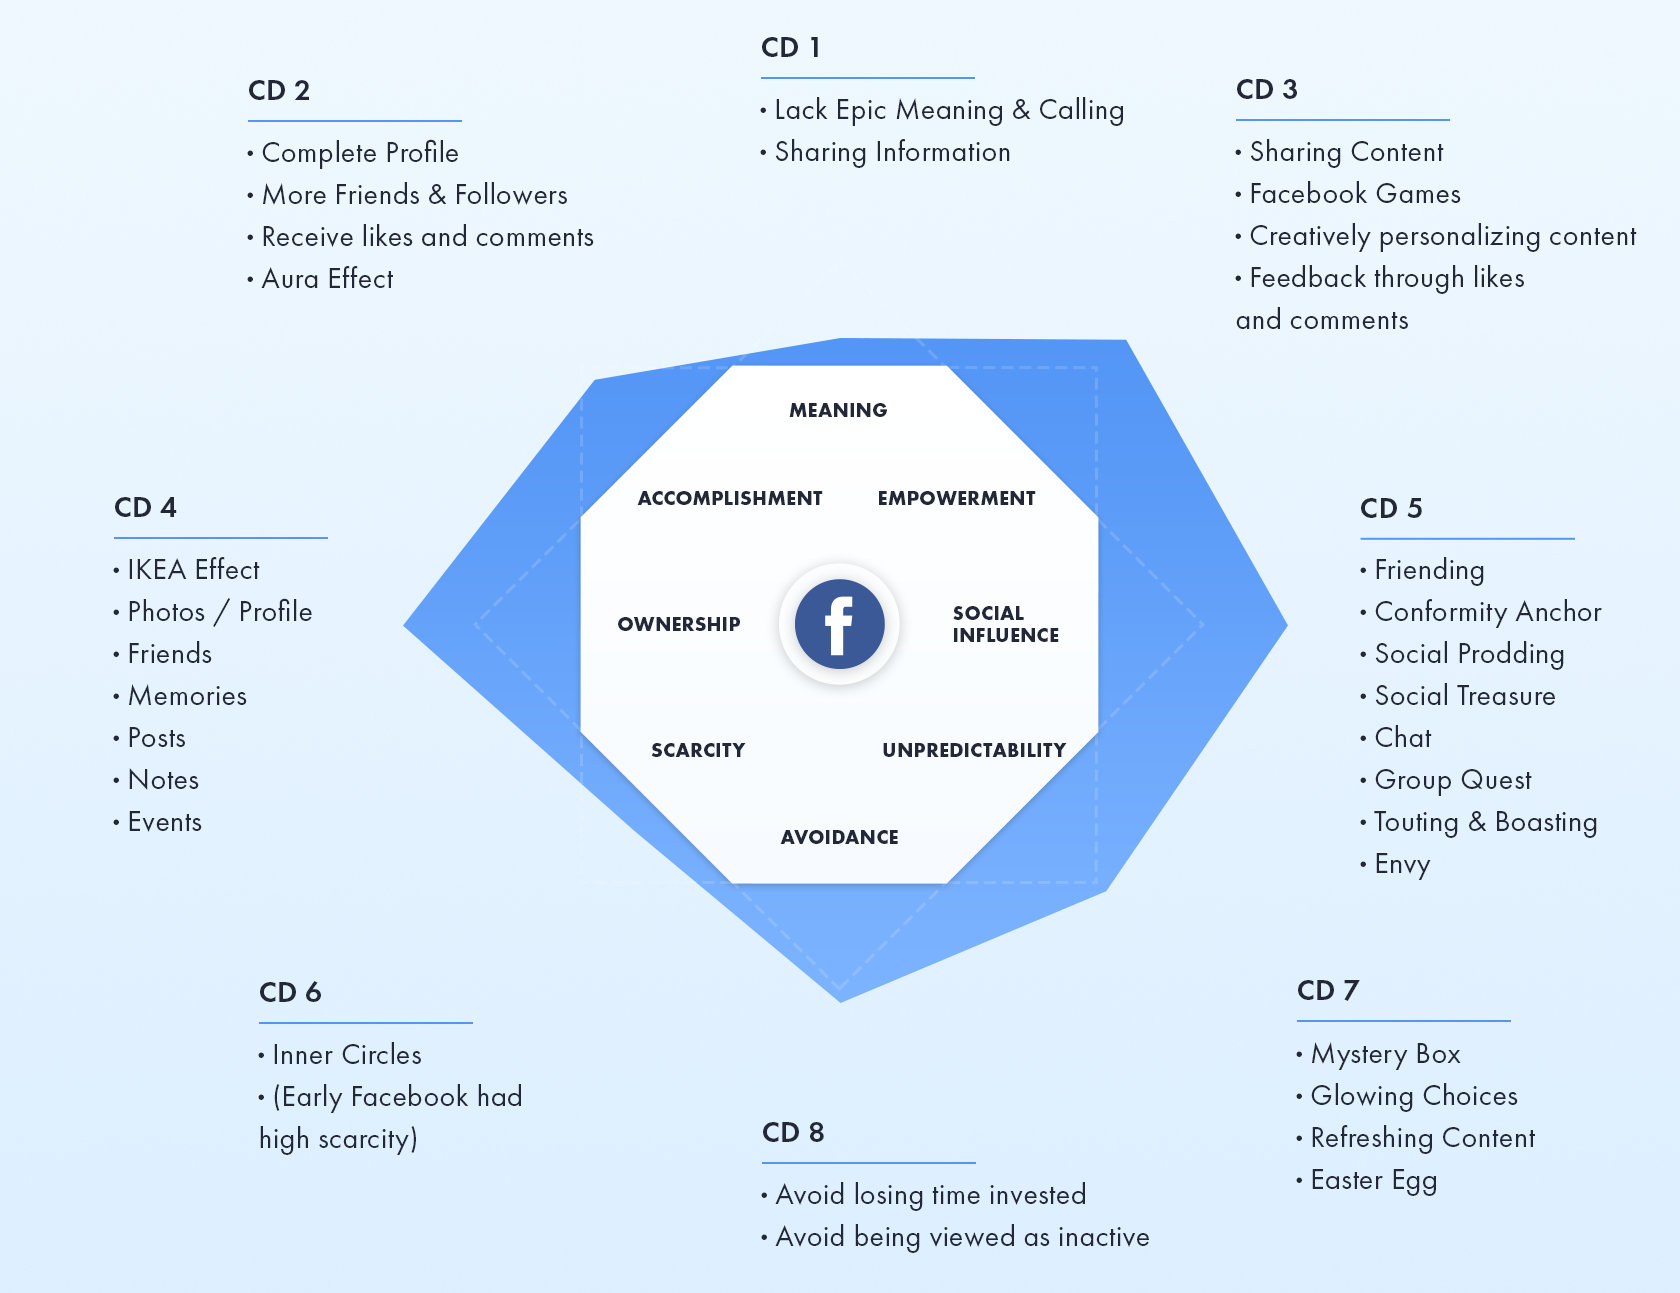 Gamification Design Facebook case study - the Octalysis framework